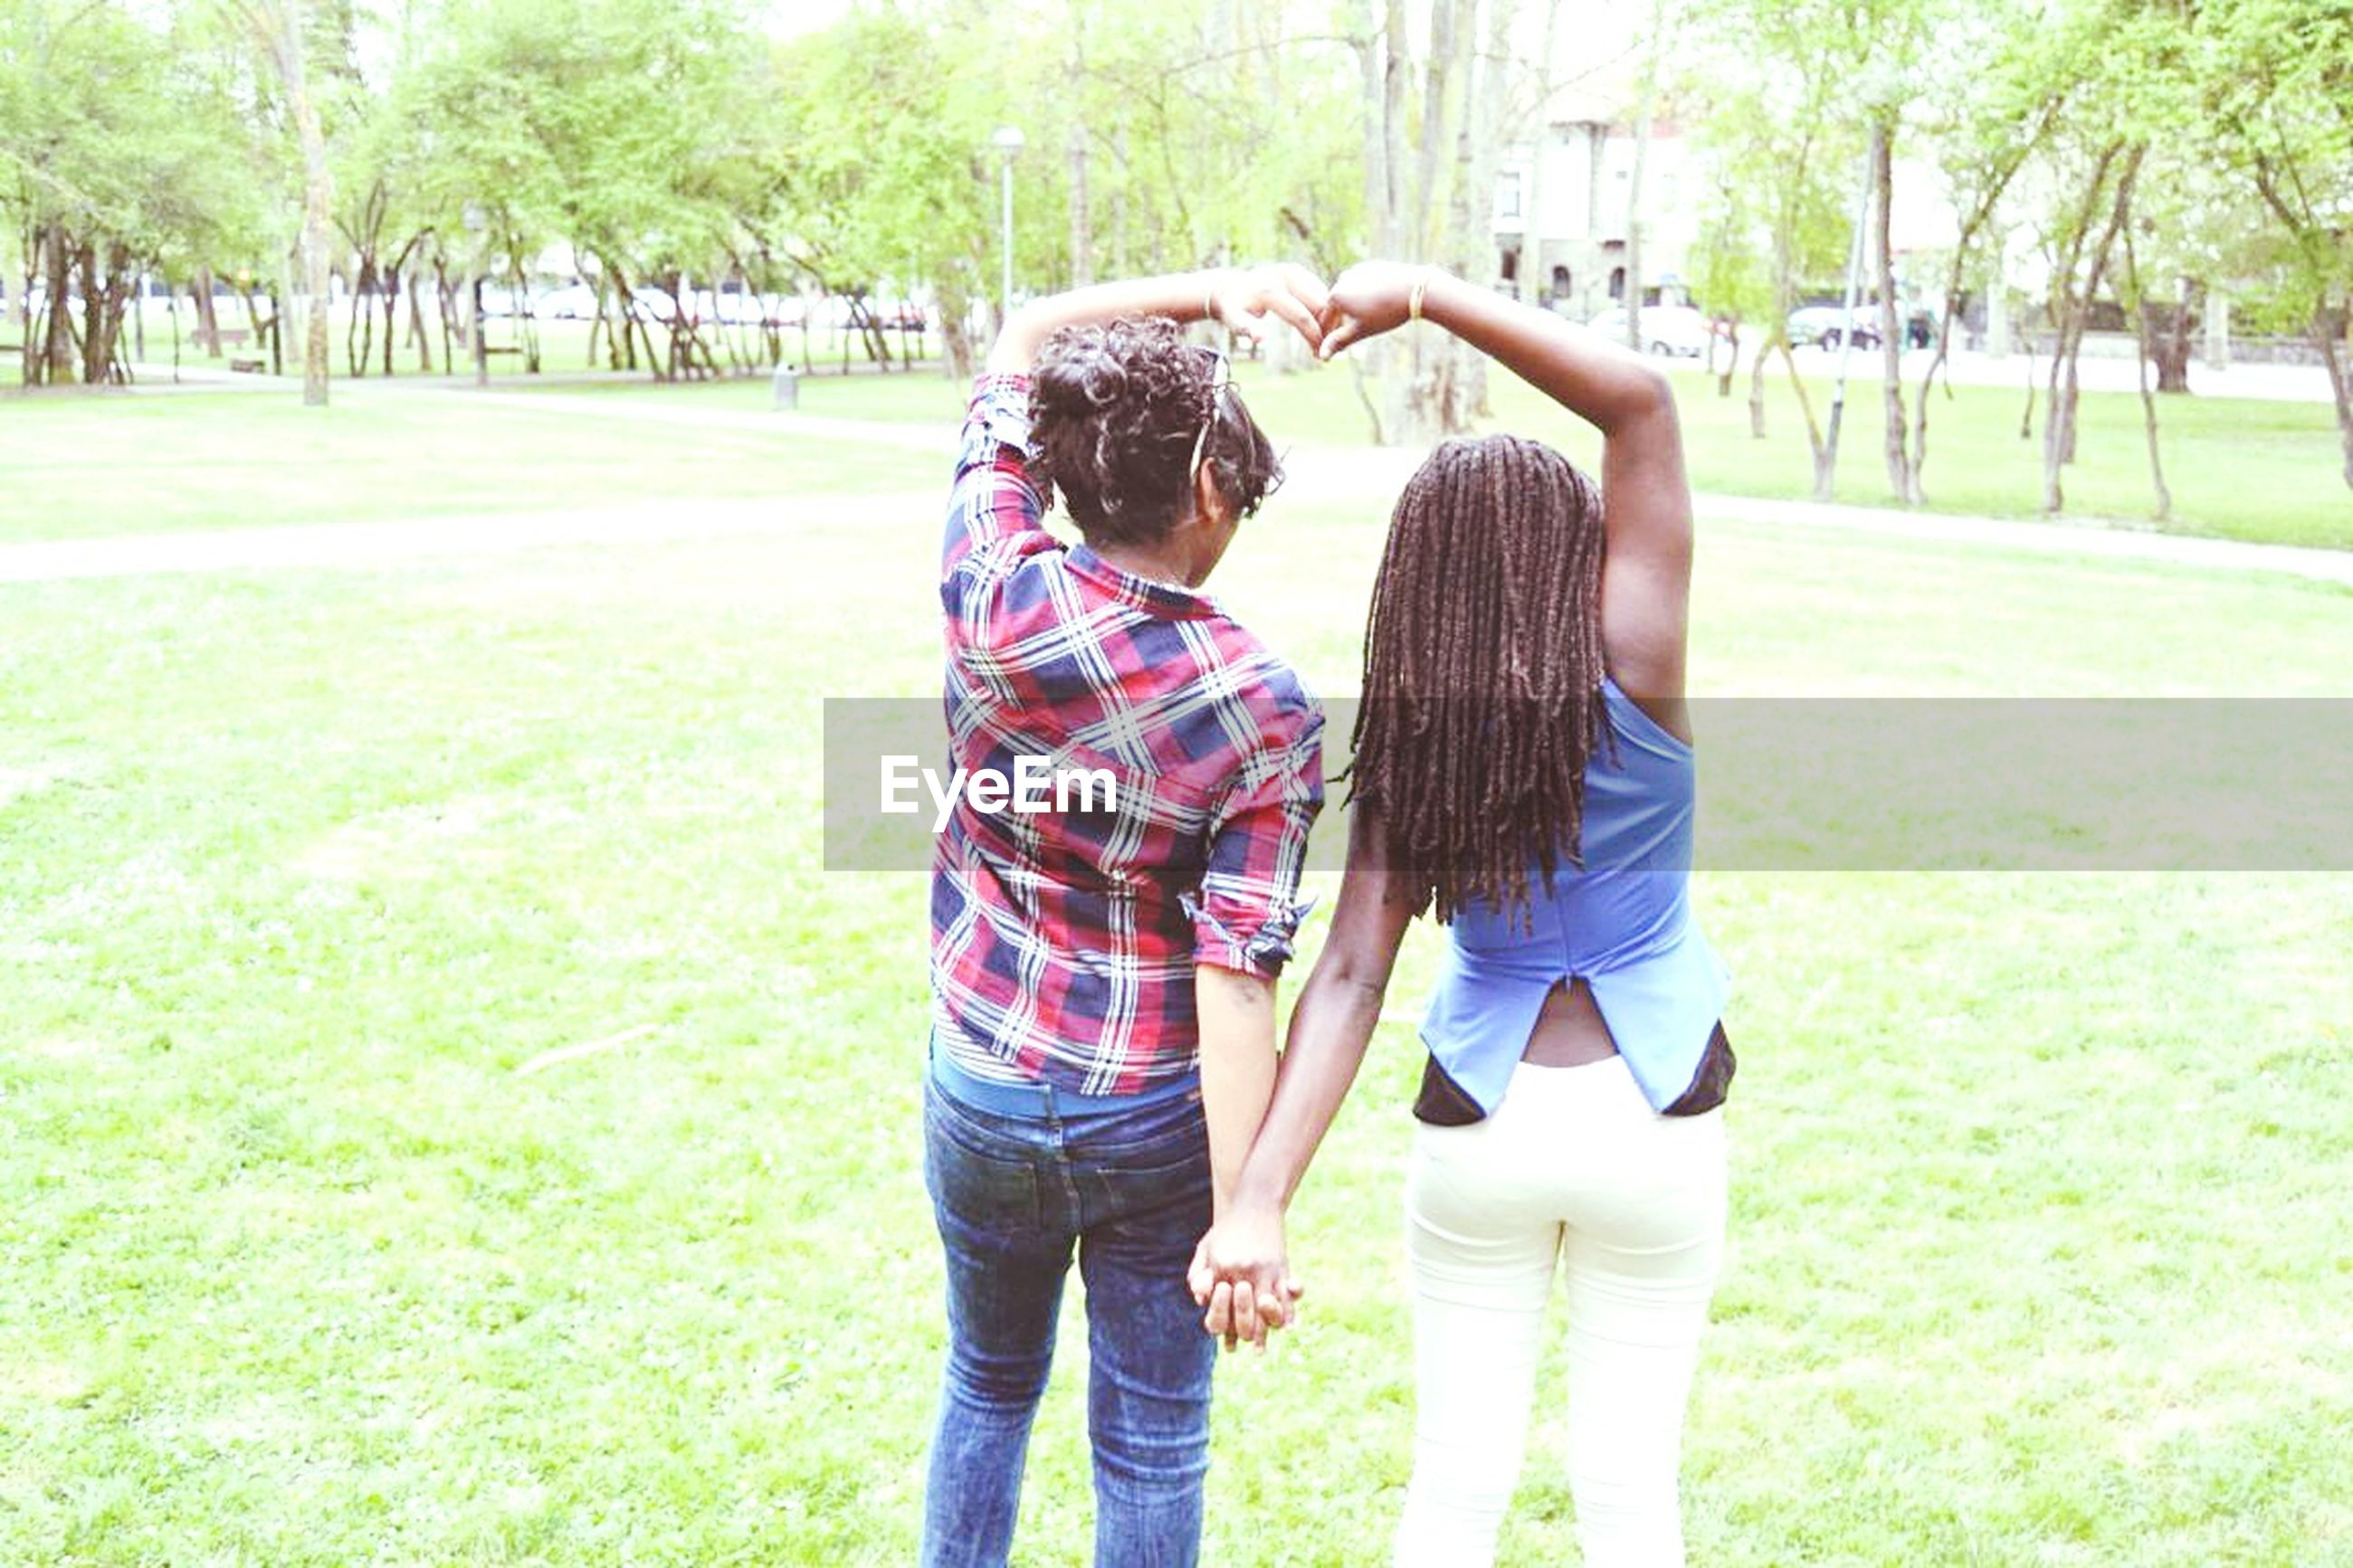 grass, lifestyles, leisure activity, casual clothing, tree, childhood, rear view, full length, standing, field, park - man made space, boys, girls, elementary age, person, grassy, three quarter length, playing